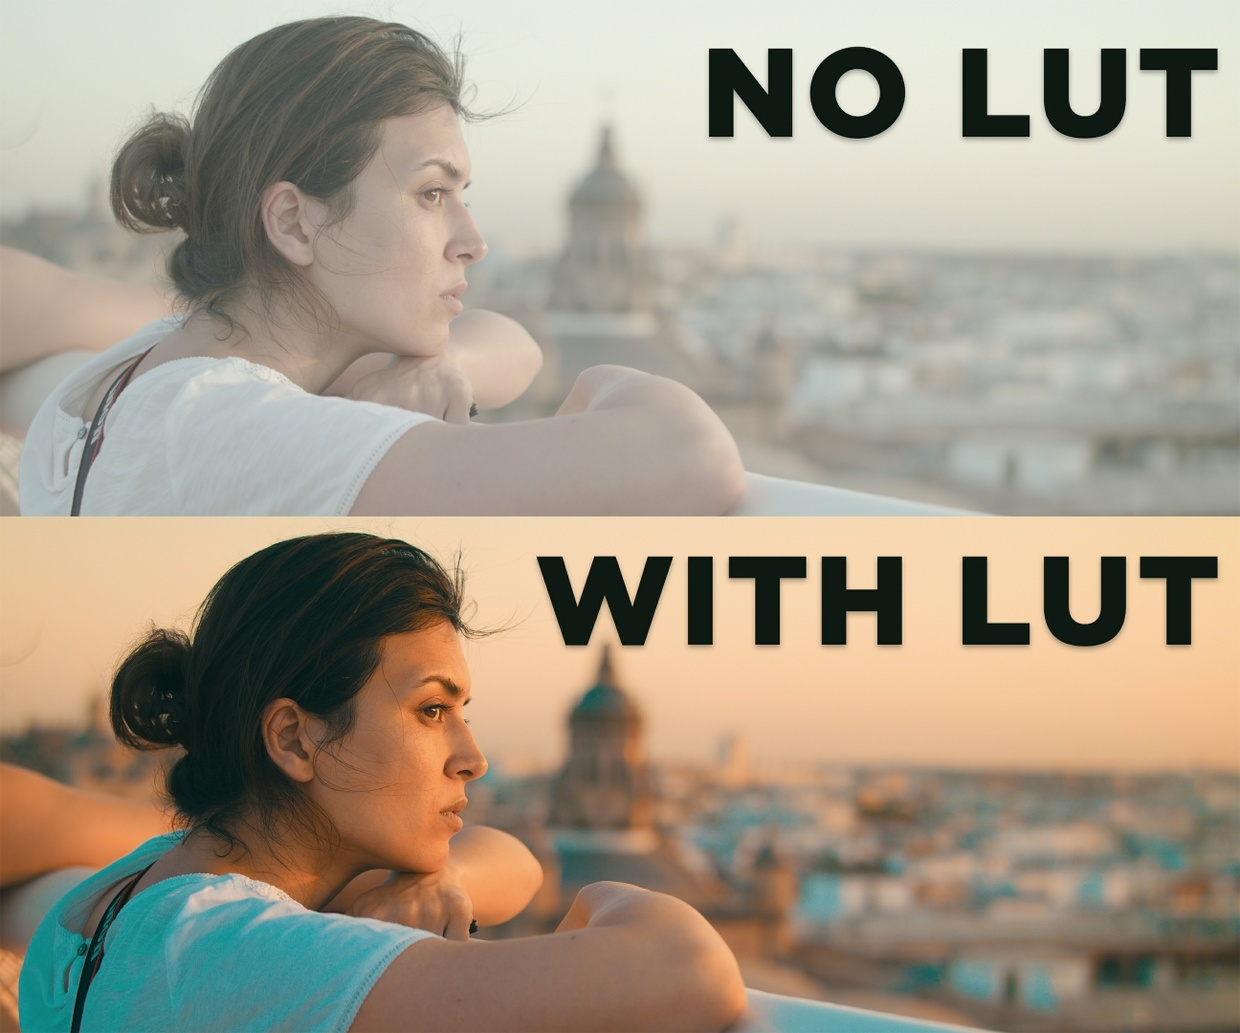 6 Cinematic LUTs by Hussain Abdullah @hussainfilming